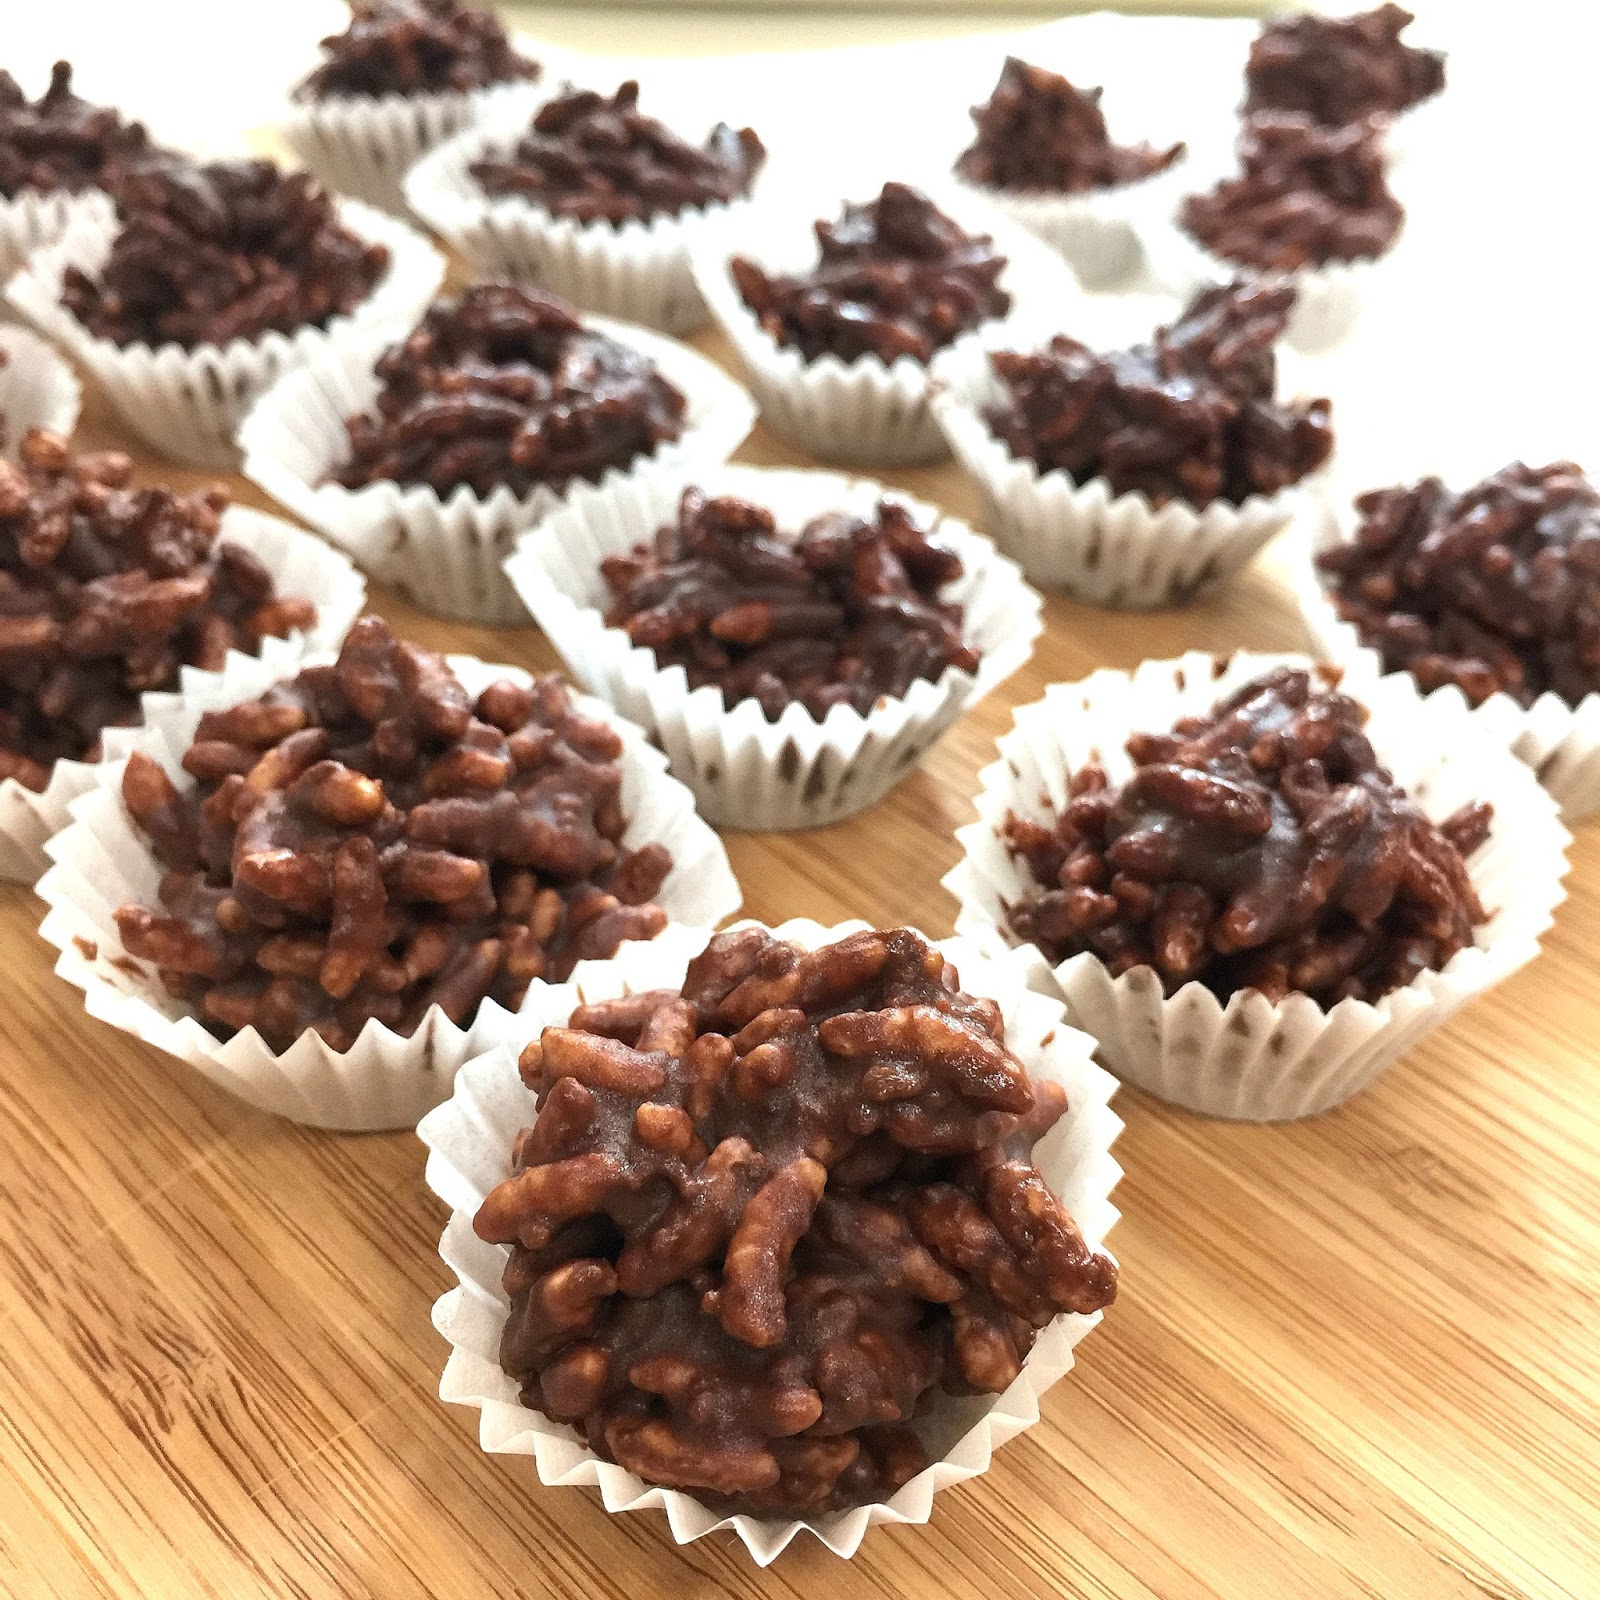 Chocolate Speculoos Rice Crispies